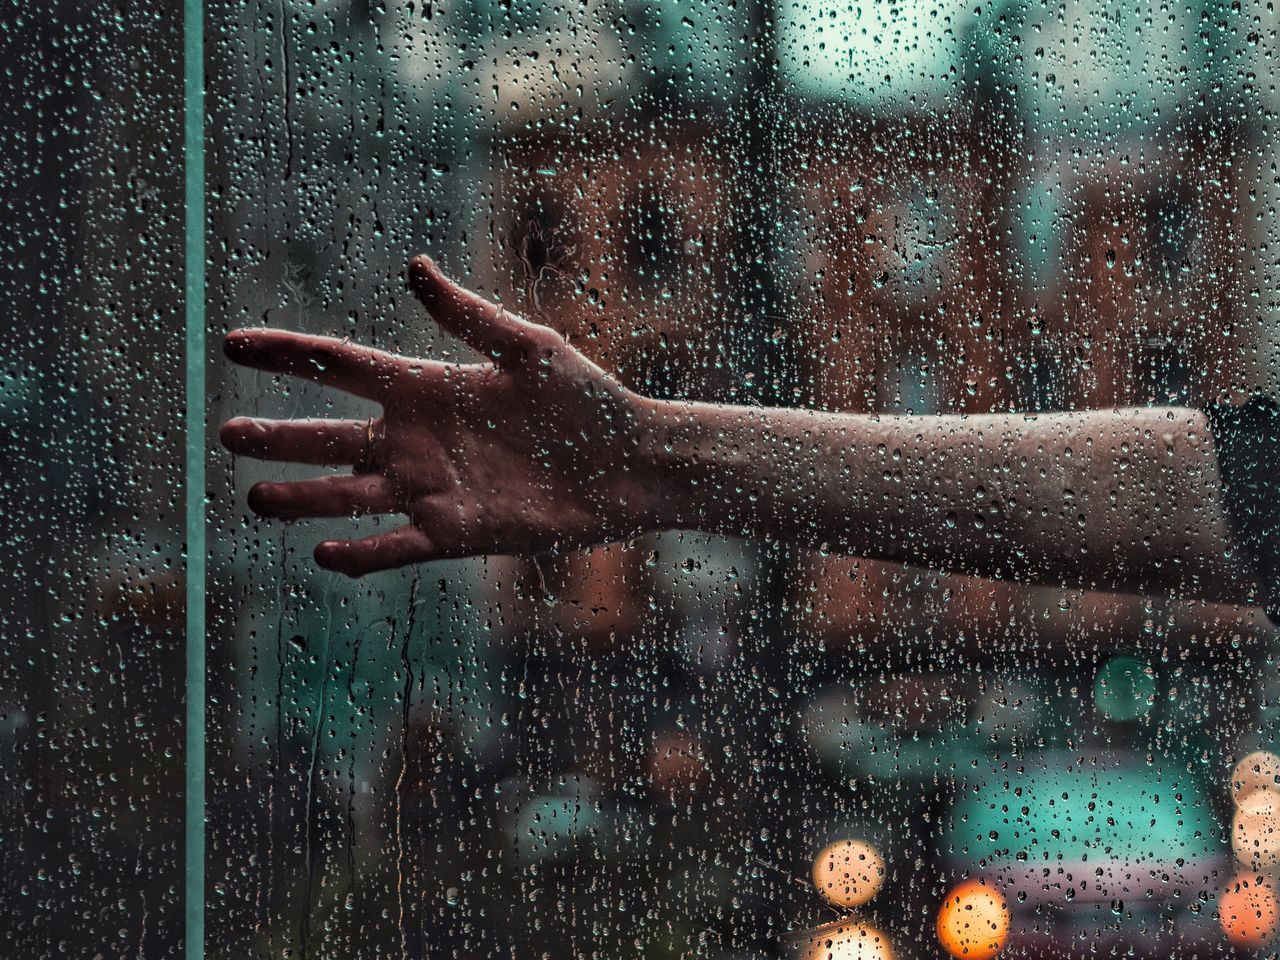 Glass - Material Human Hand Drop Window Rain Wet Human Body Part RainDrop Close-up Water EyeEm Best Shots Abstract Chicago Mood Moody